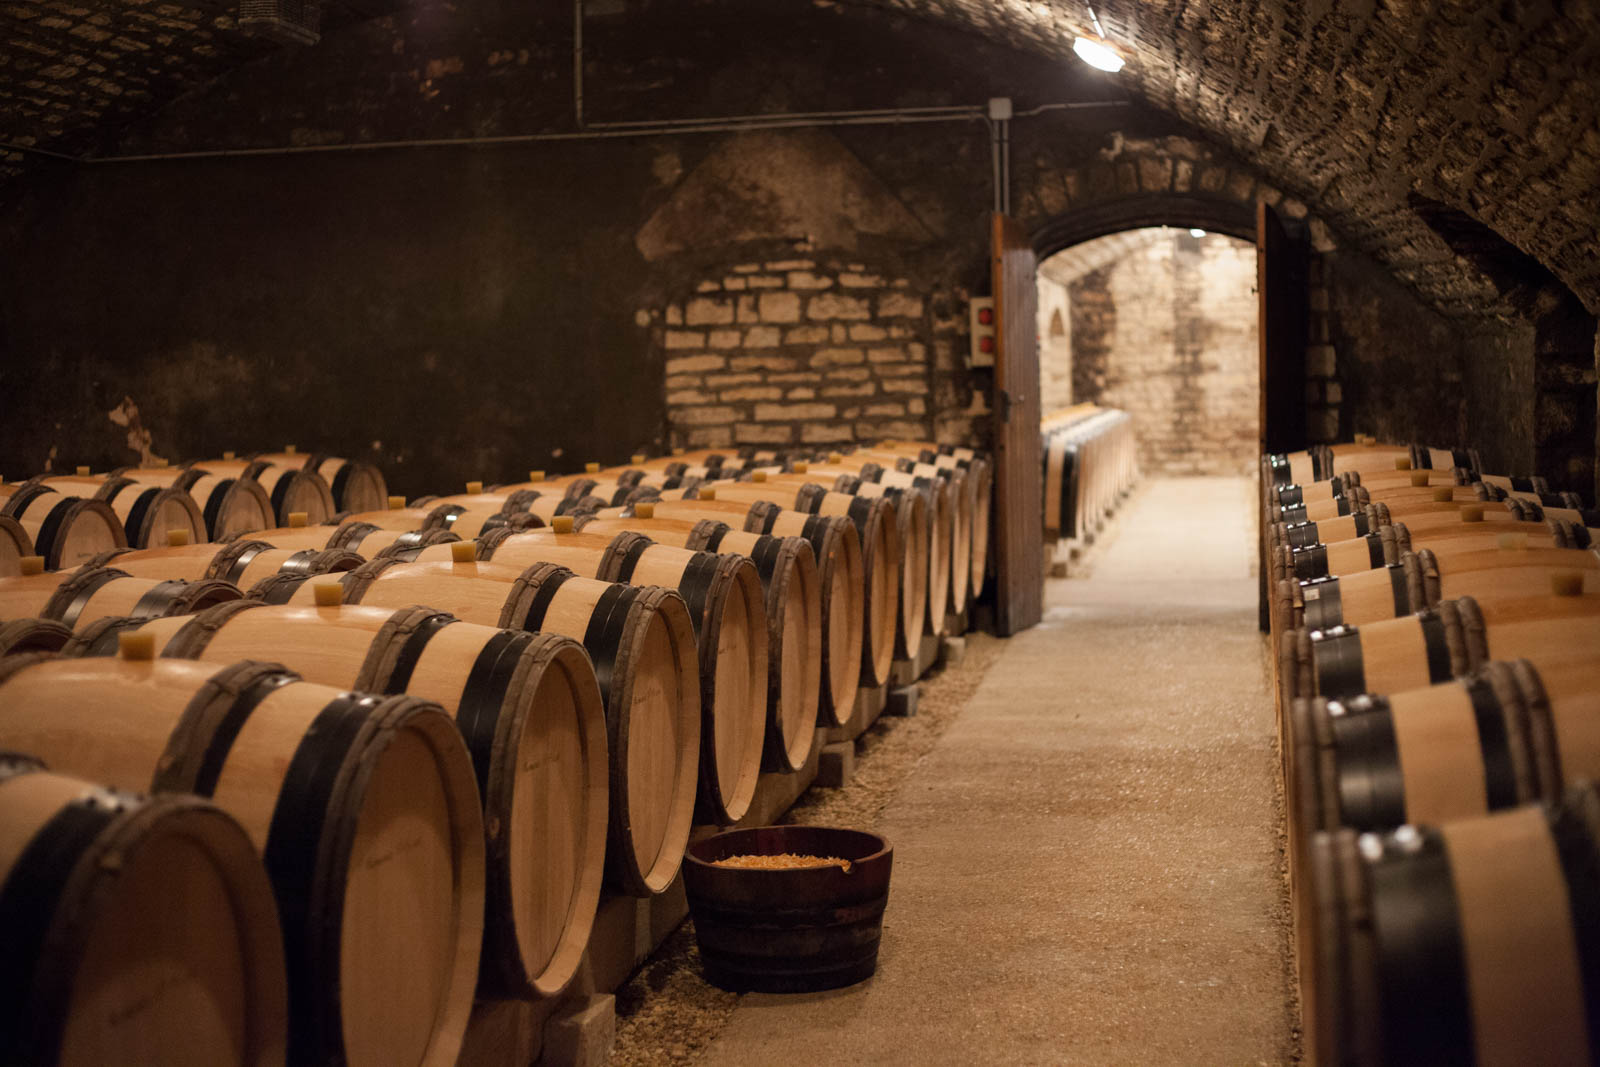 In the second of three rooms in the cellar, the wines from Romanée-St-Vivant, Grands Echézeaux and Richebourgh Grand Cru rest. ©Kevin Day / Opening a Bottle